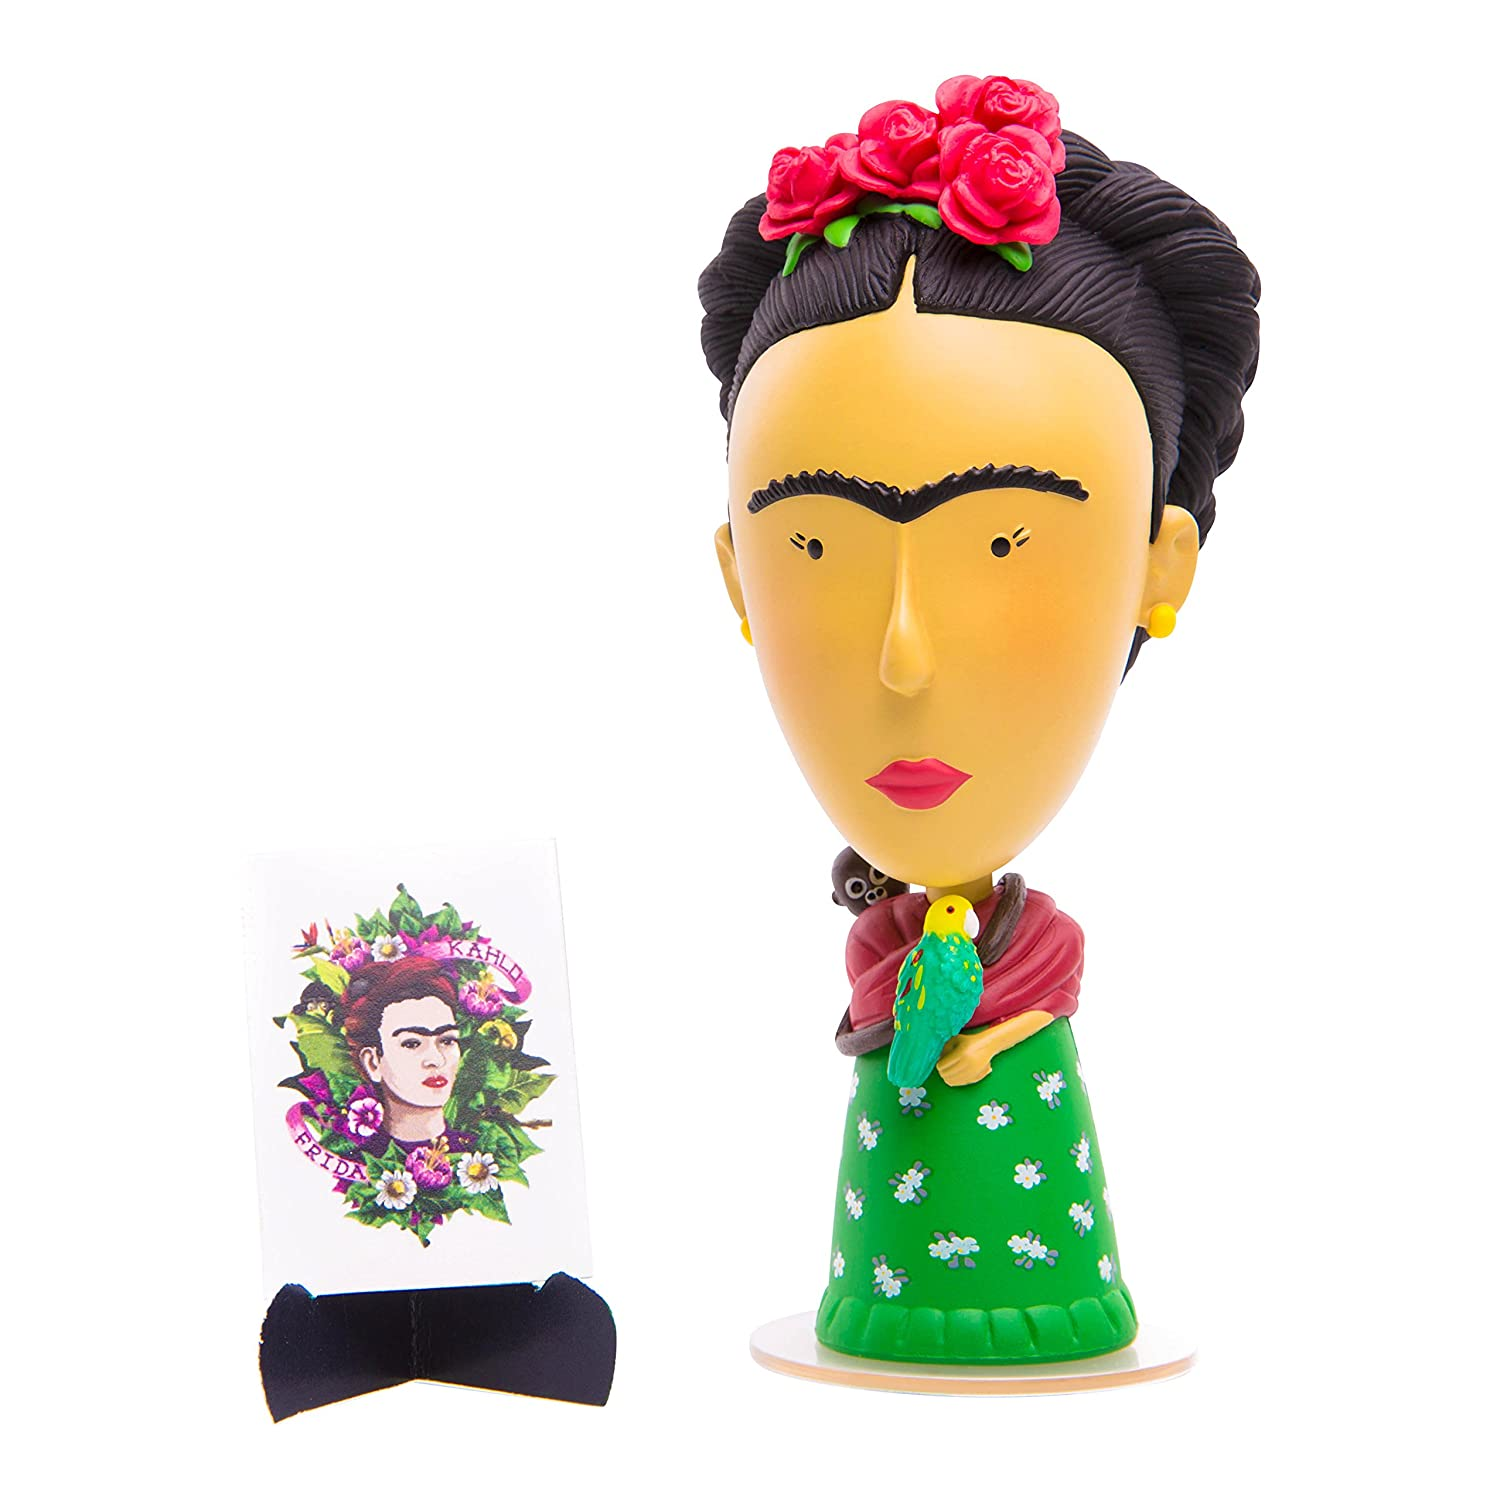 Today is Art Day - Famous Painters and Artists Action Figure Dolls - PVC - 5'H x 3'L x 3'W Inches